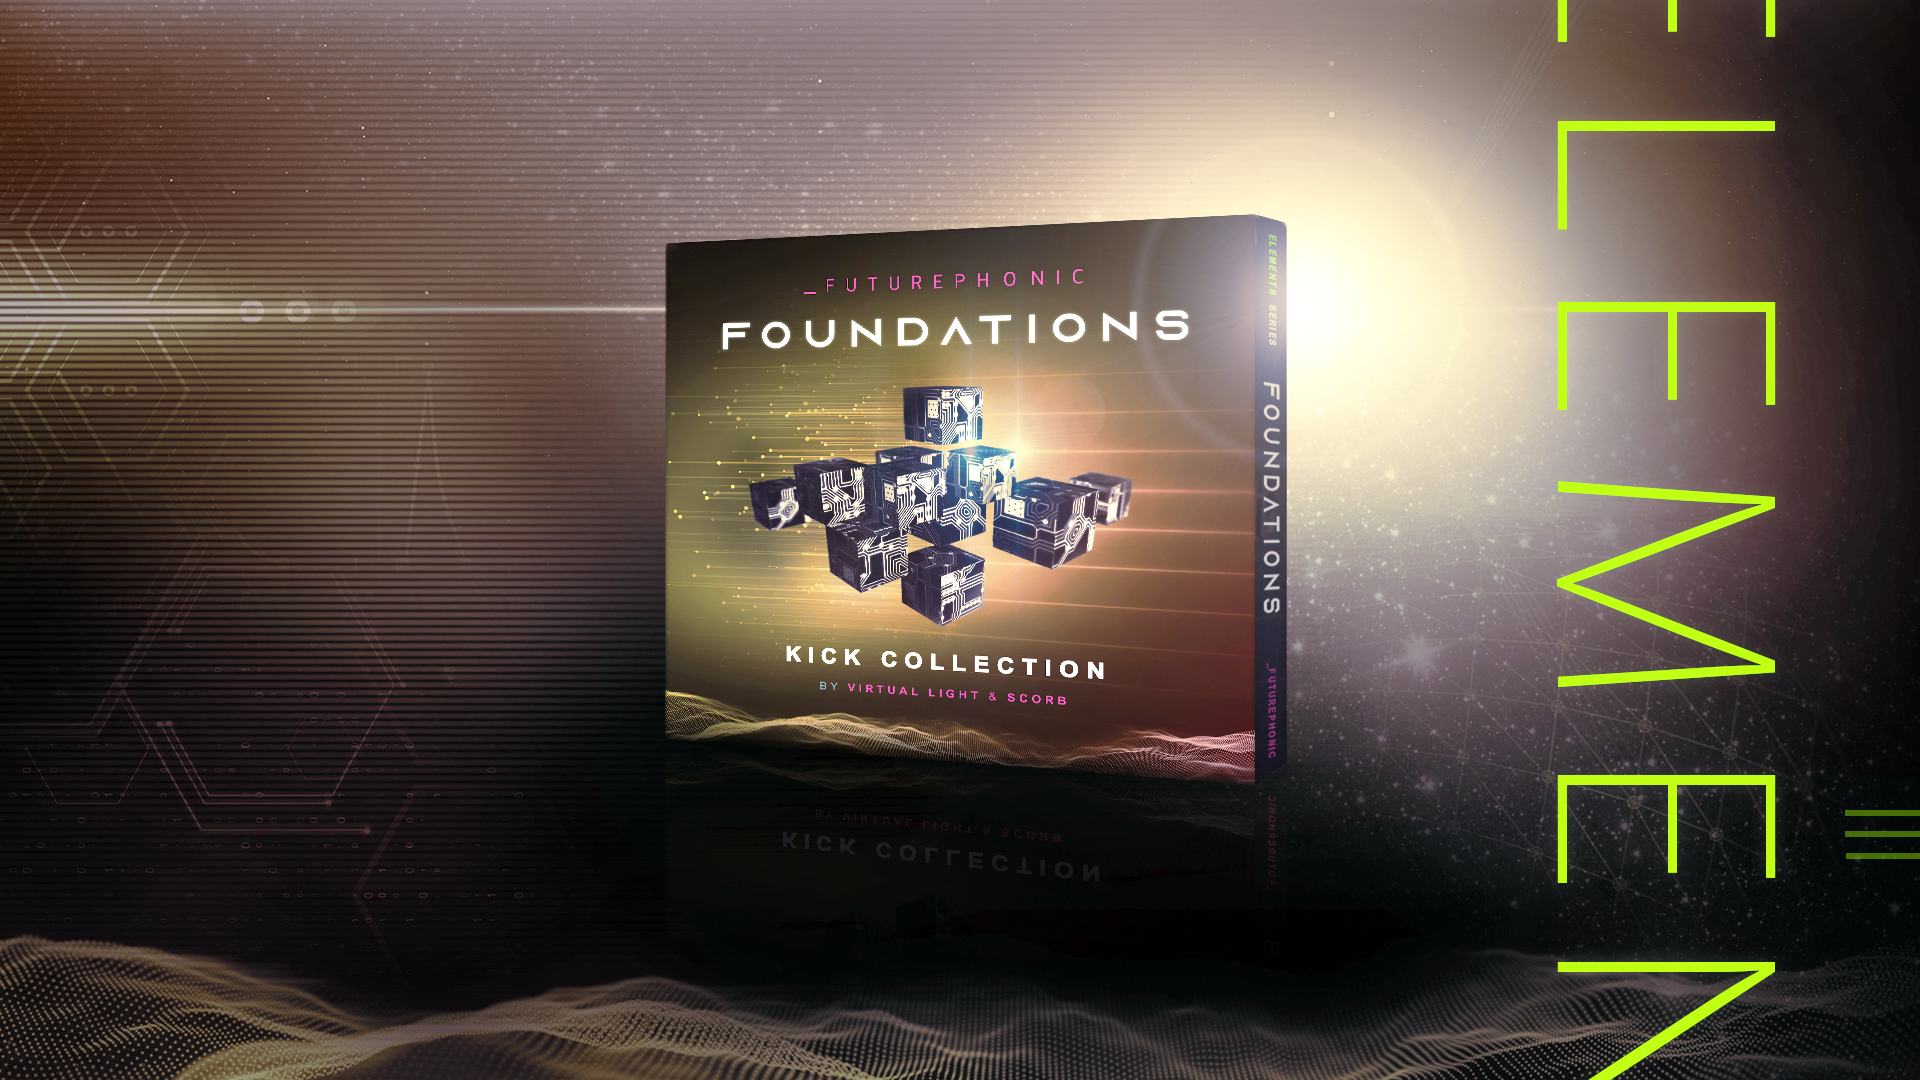 Foundations - Kick Collection by Scorb and Virtual Light